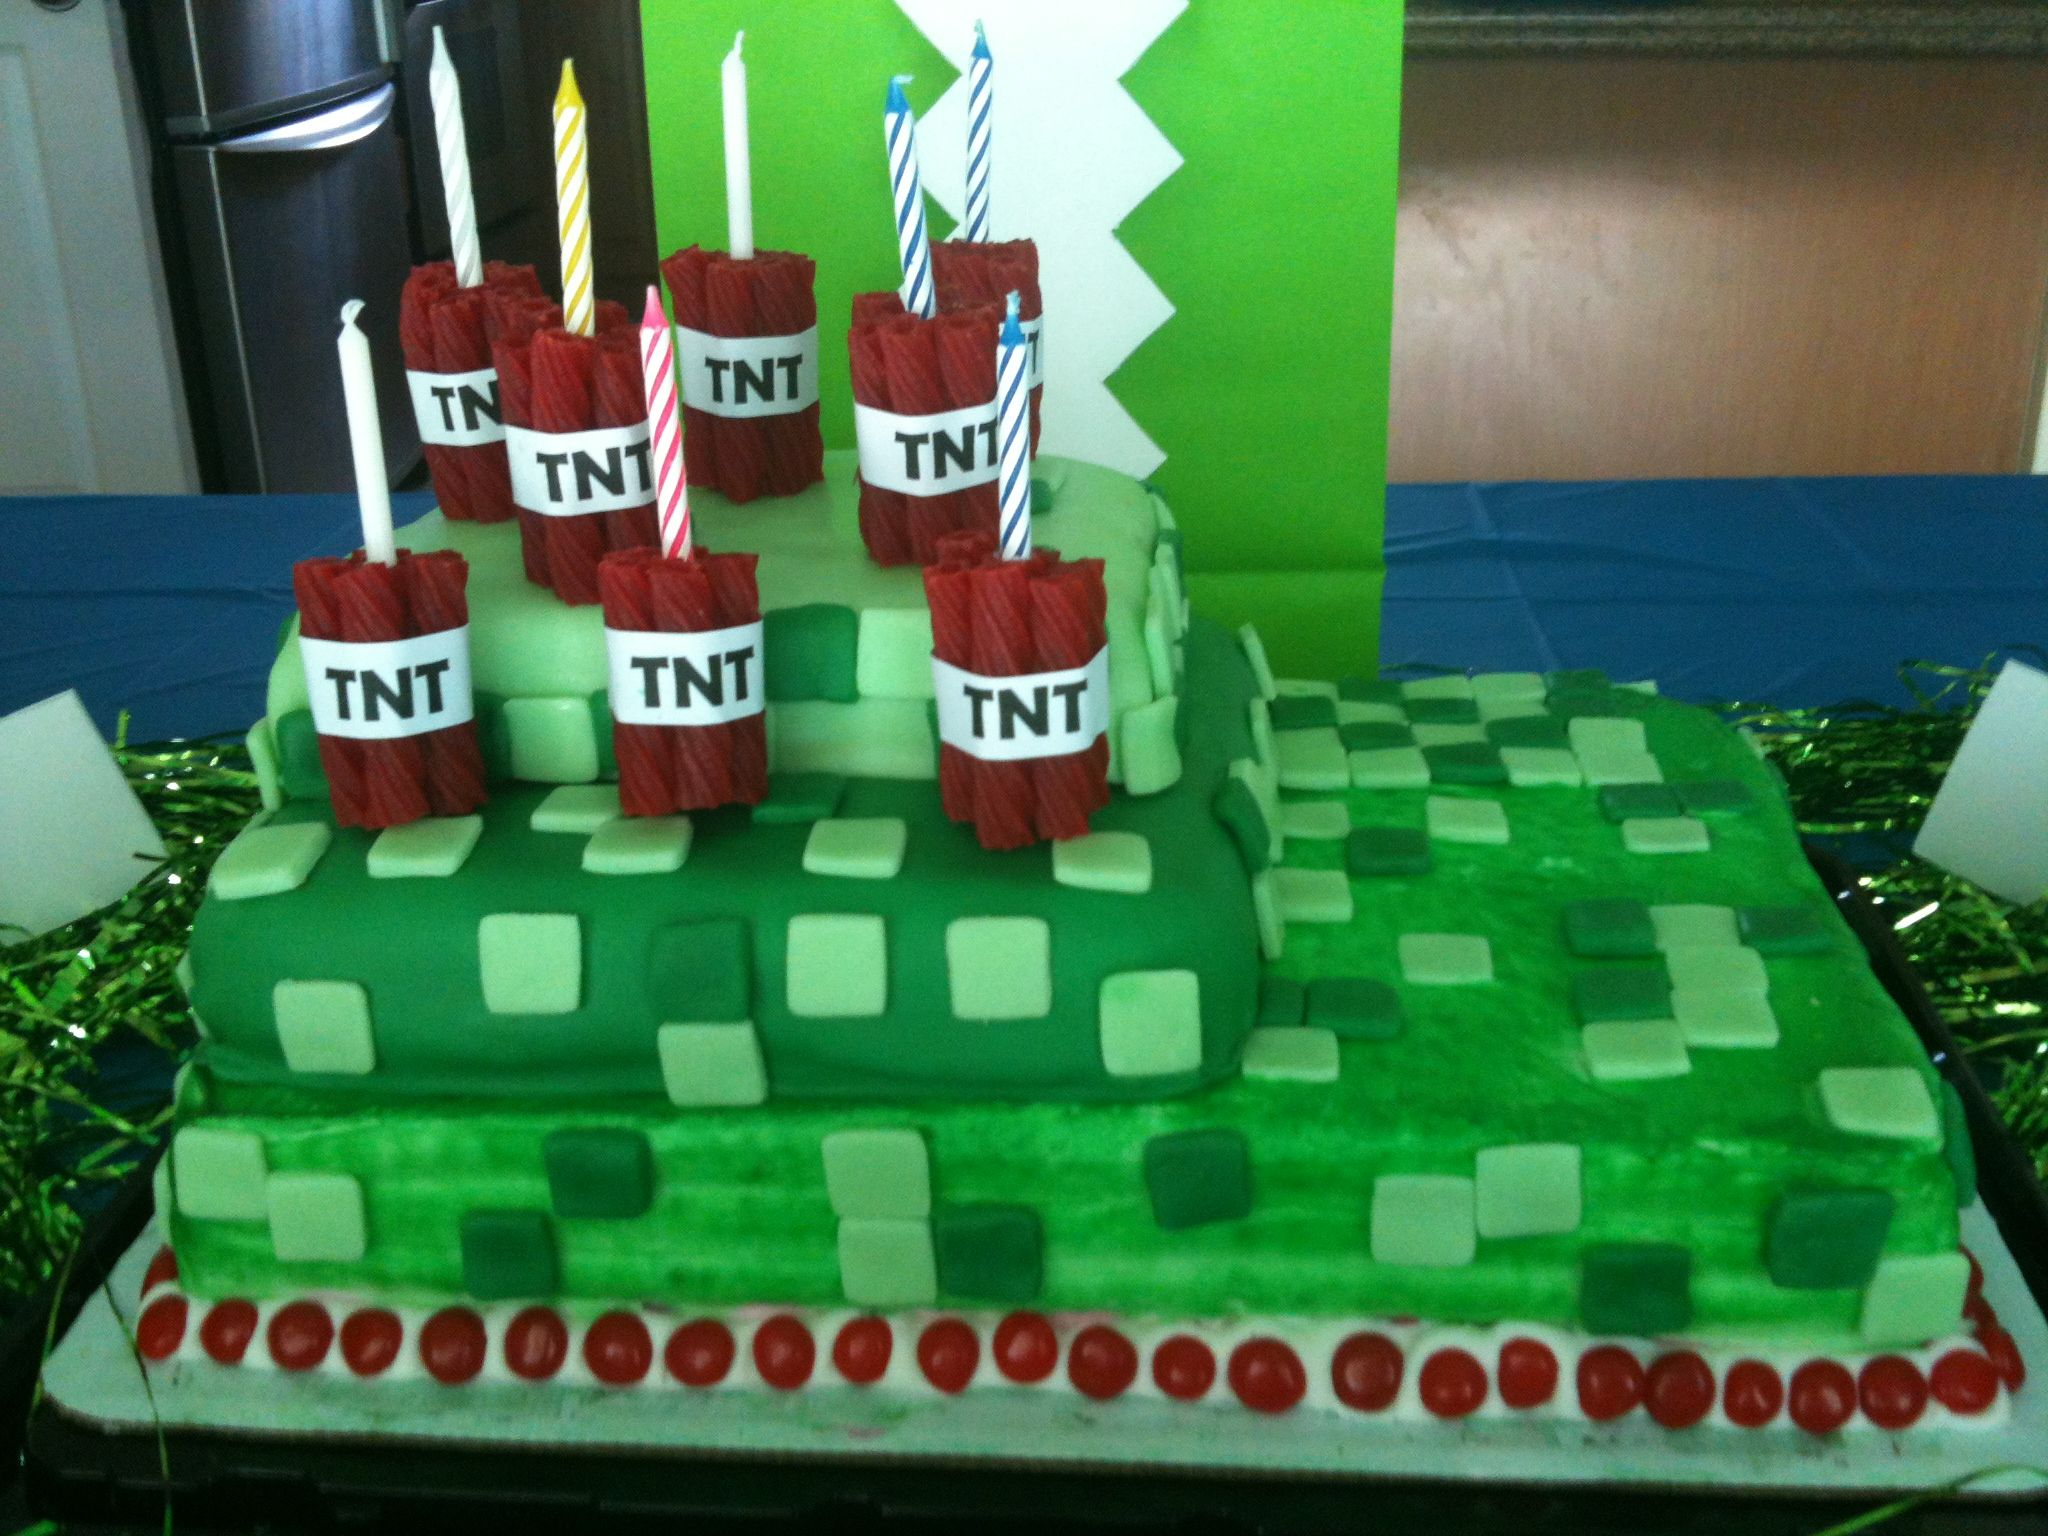 Minecraft Cake With Tnt Candles Travis Atkinson What Do